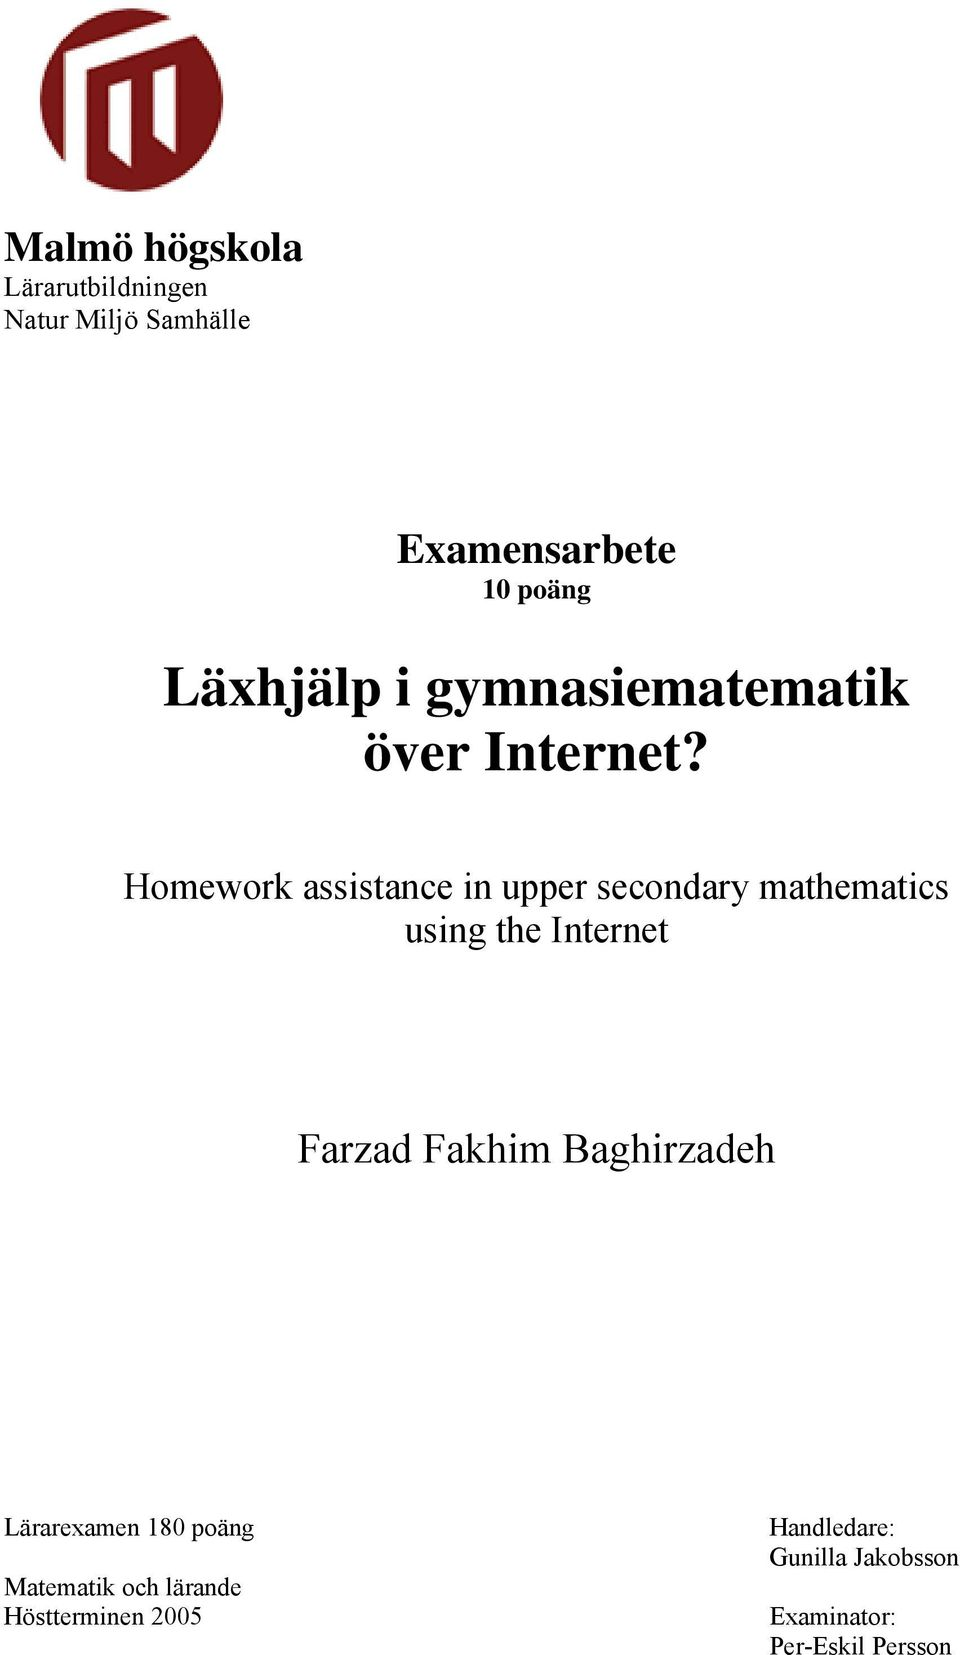 Homework assistance in upper secondary mathematics using the Internet Farzad Fakhim